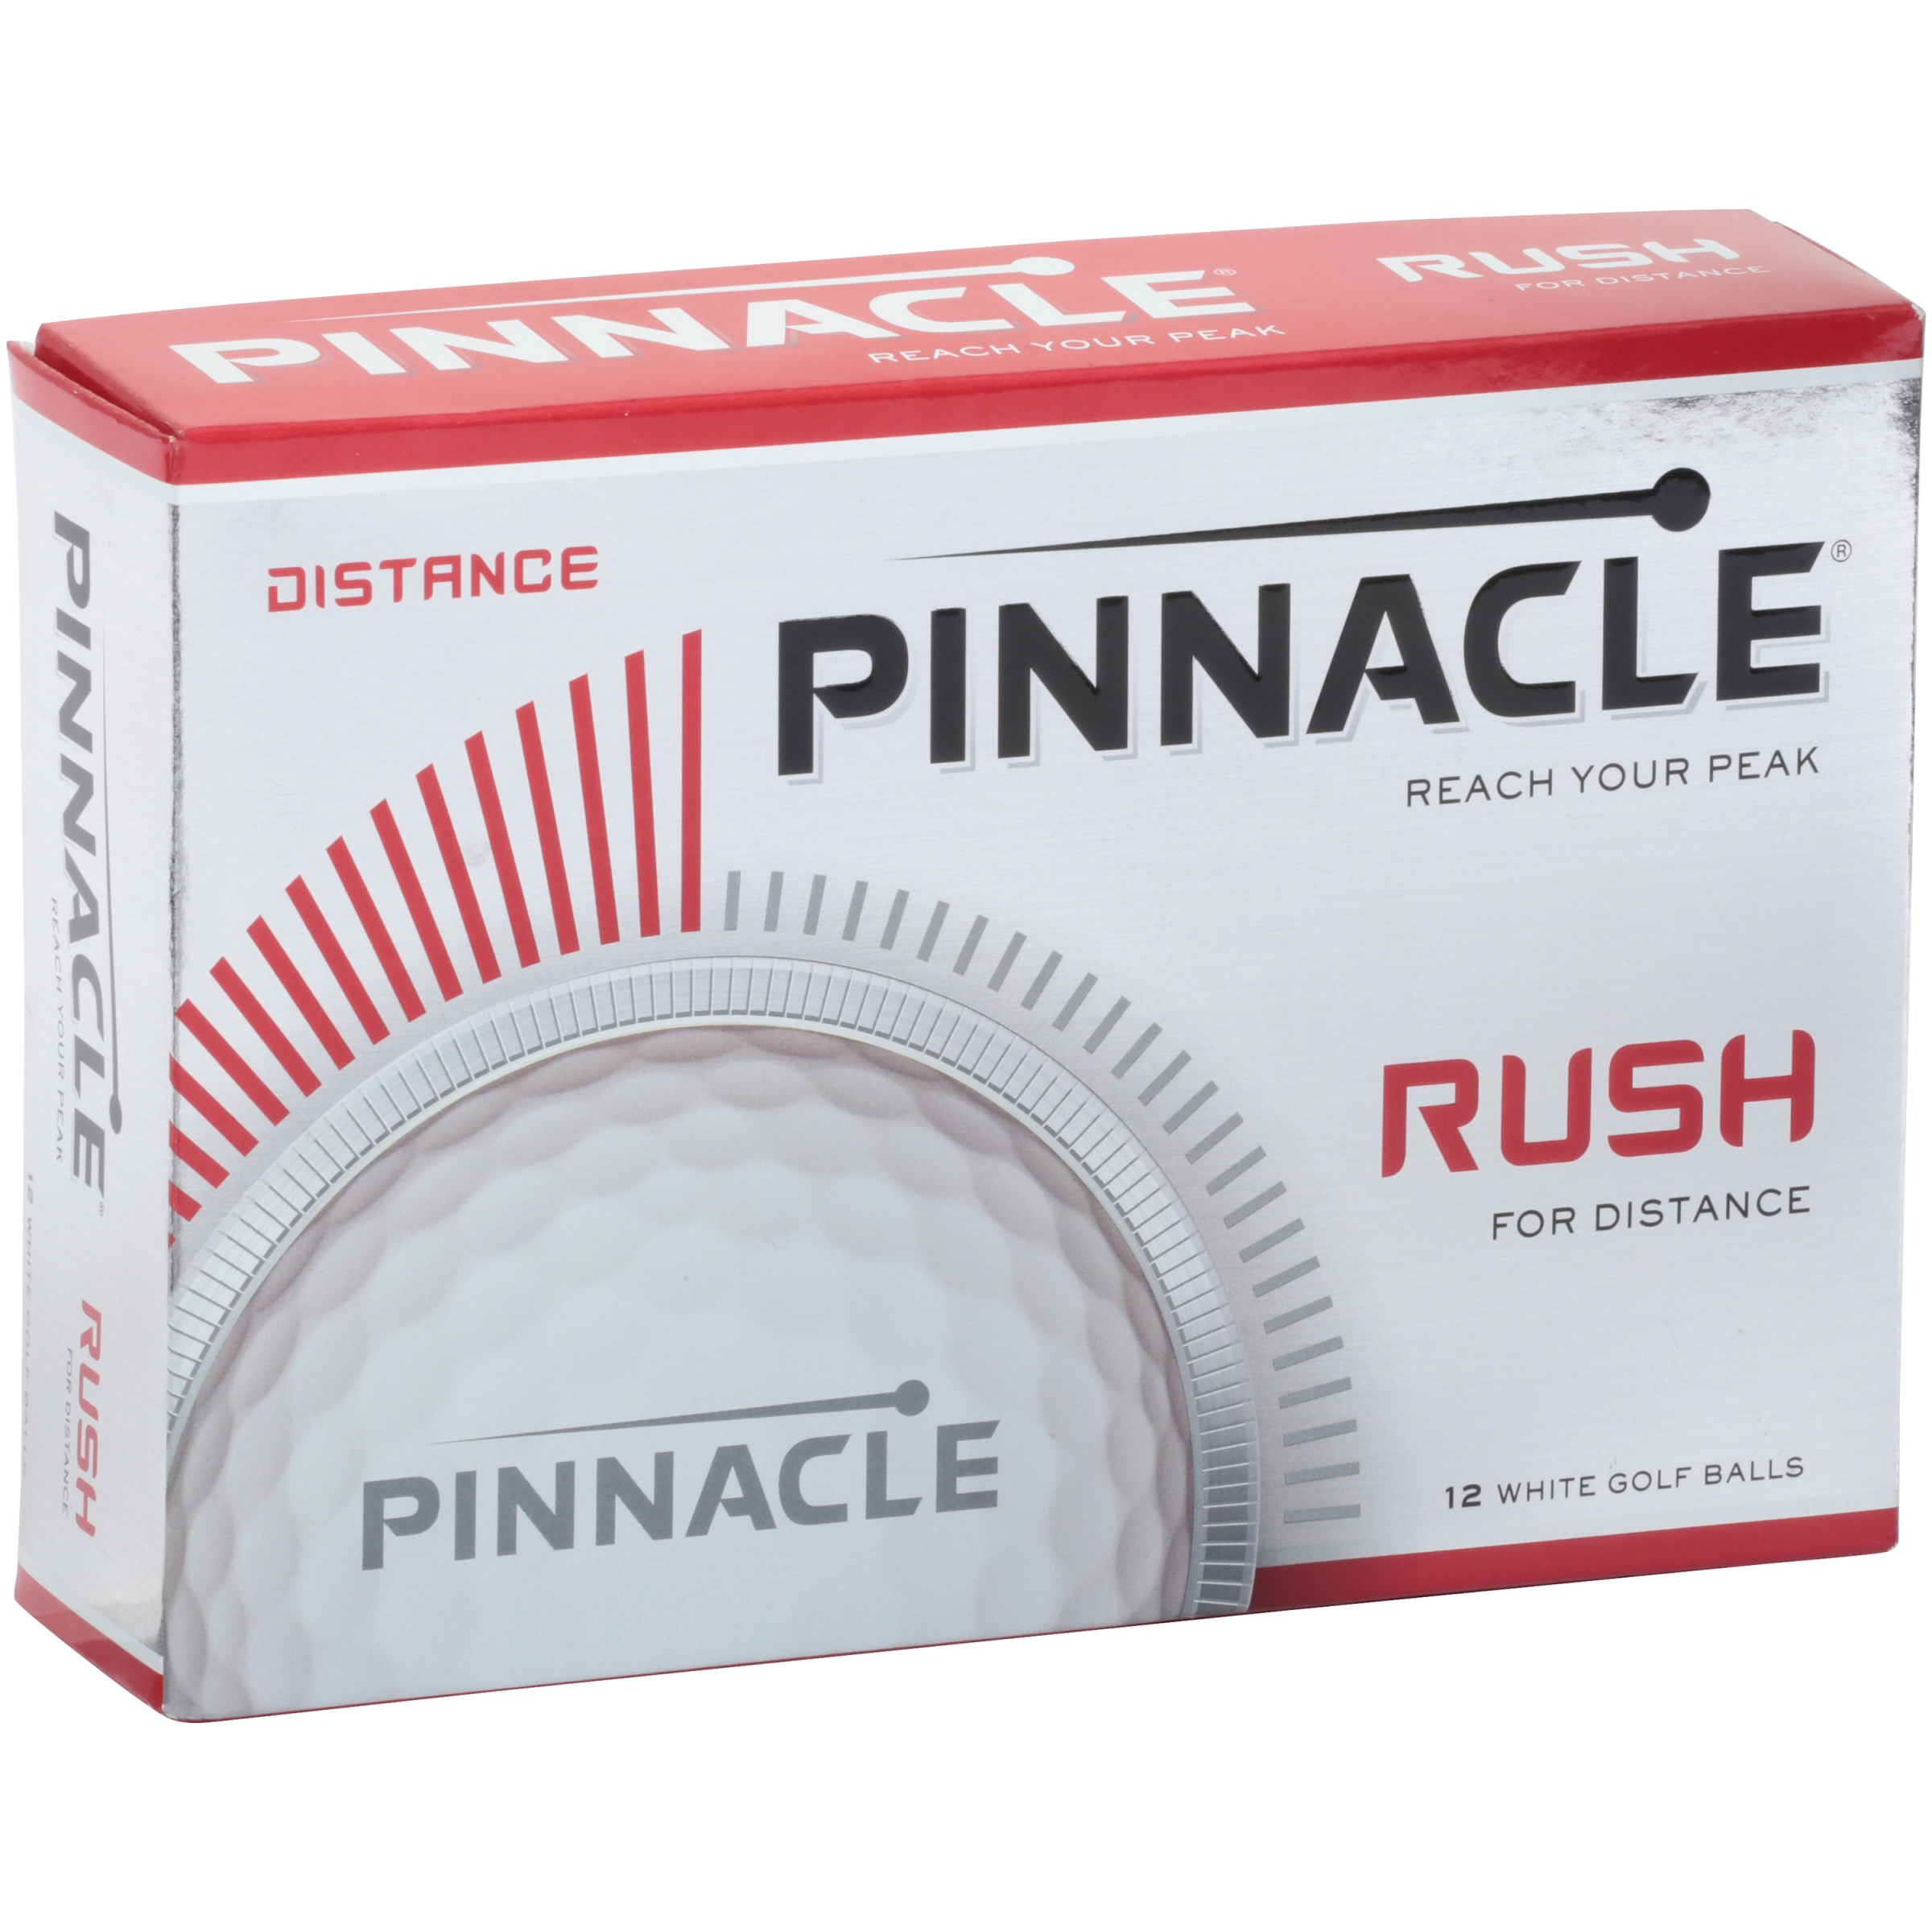 Pinnacle Rush for Distance Golf Balls, 12 Pack